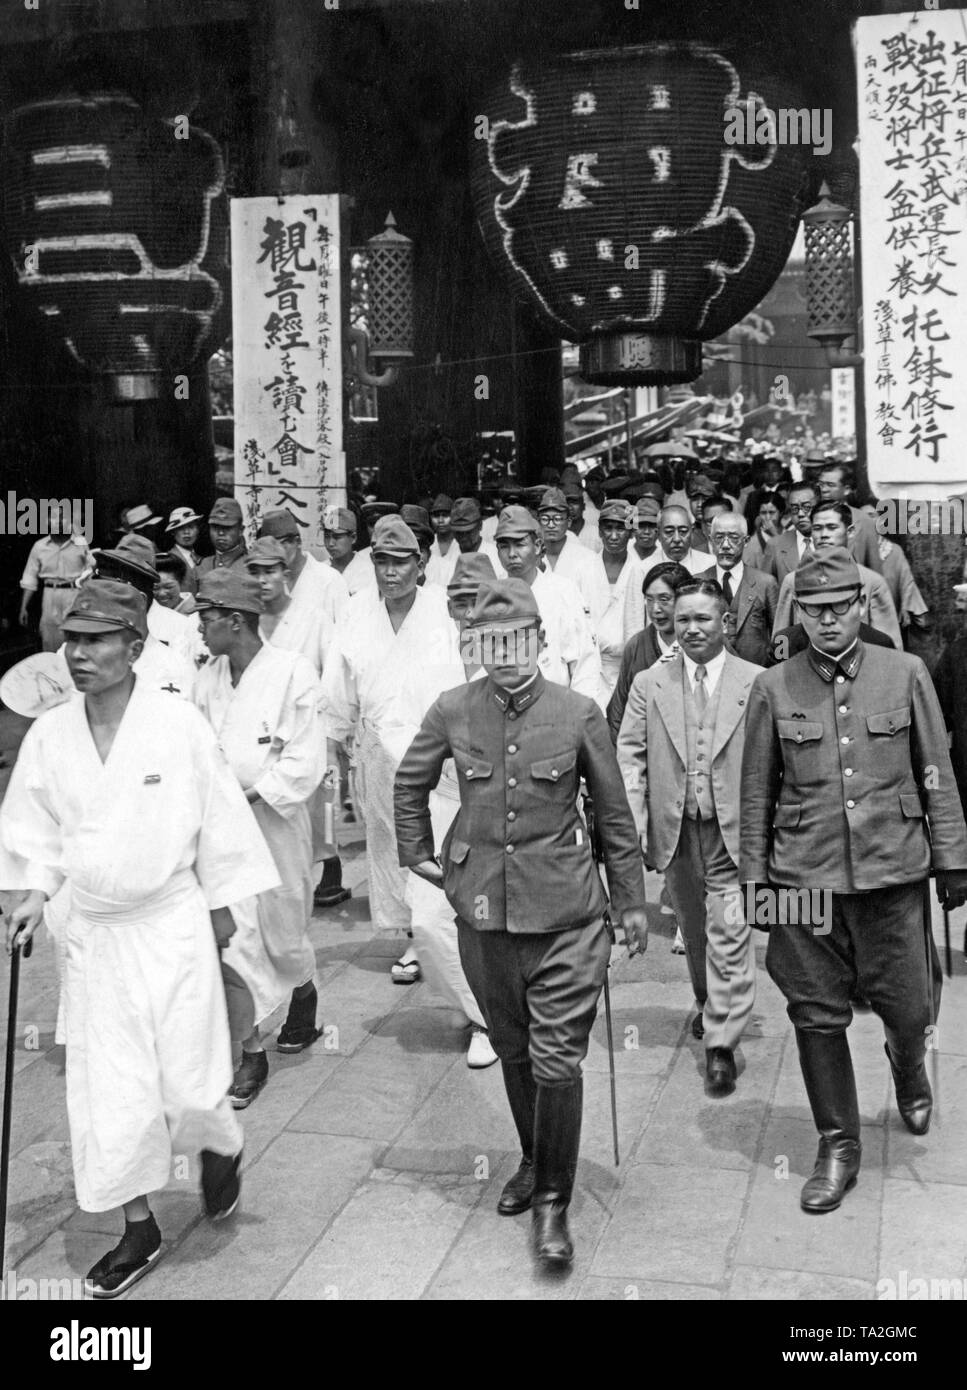 Members of the Japanese military and wounded soldiers from the Second Japanese-Chinese War, visit the city of Sakura to recruit more soldiers for the war. (undated photo, 1930s) - Stock Image